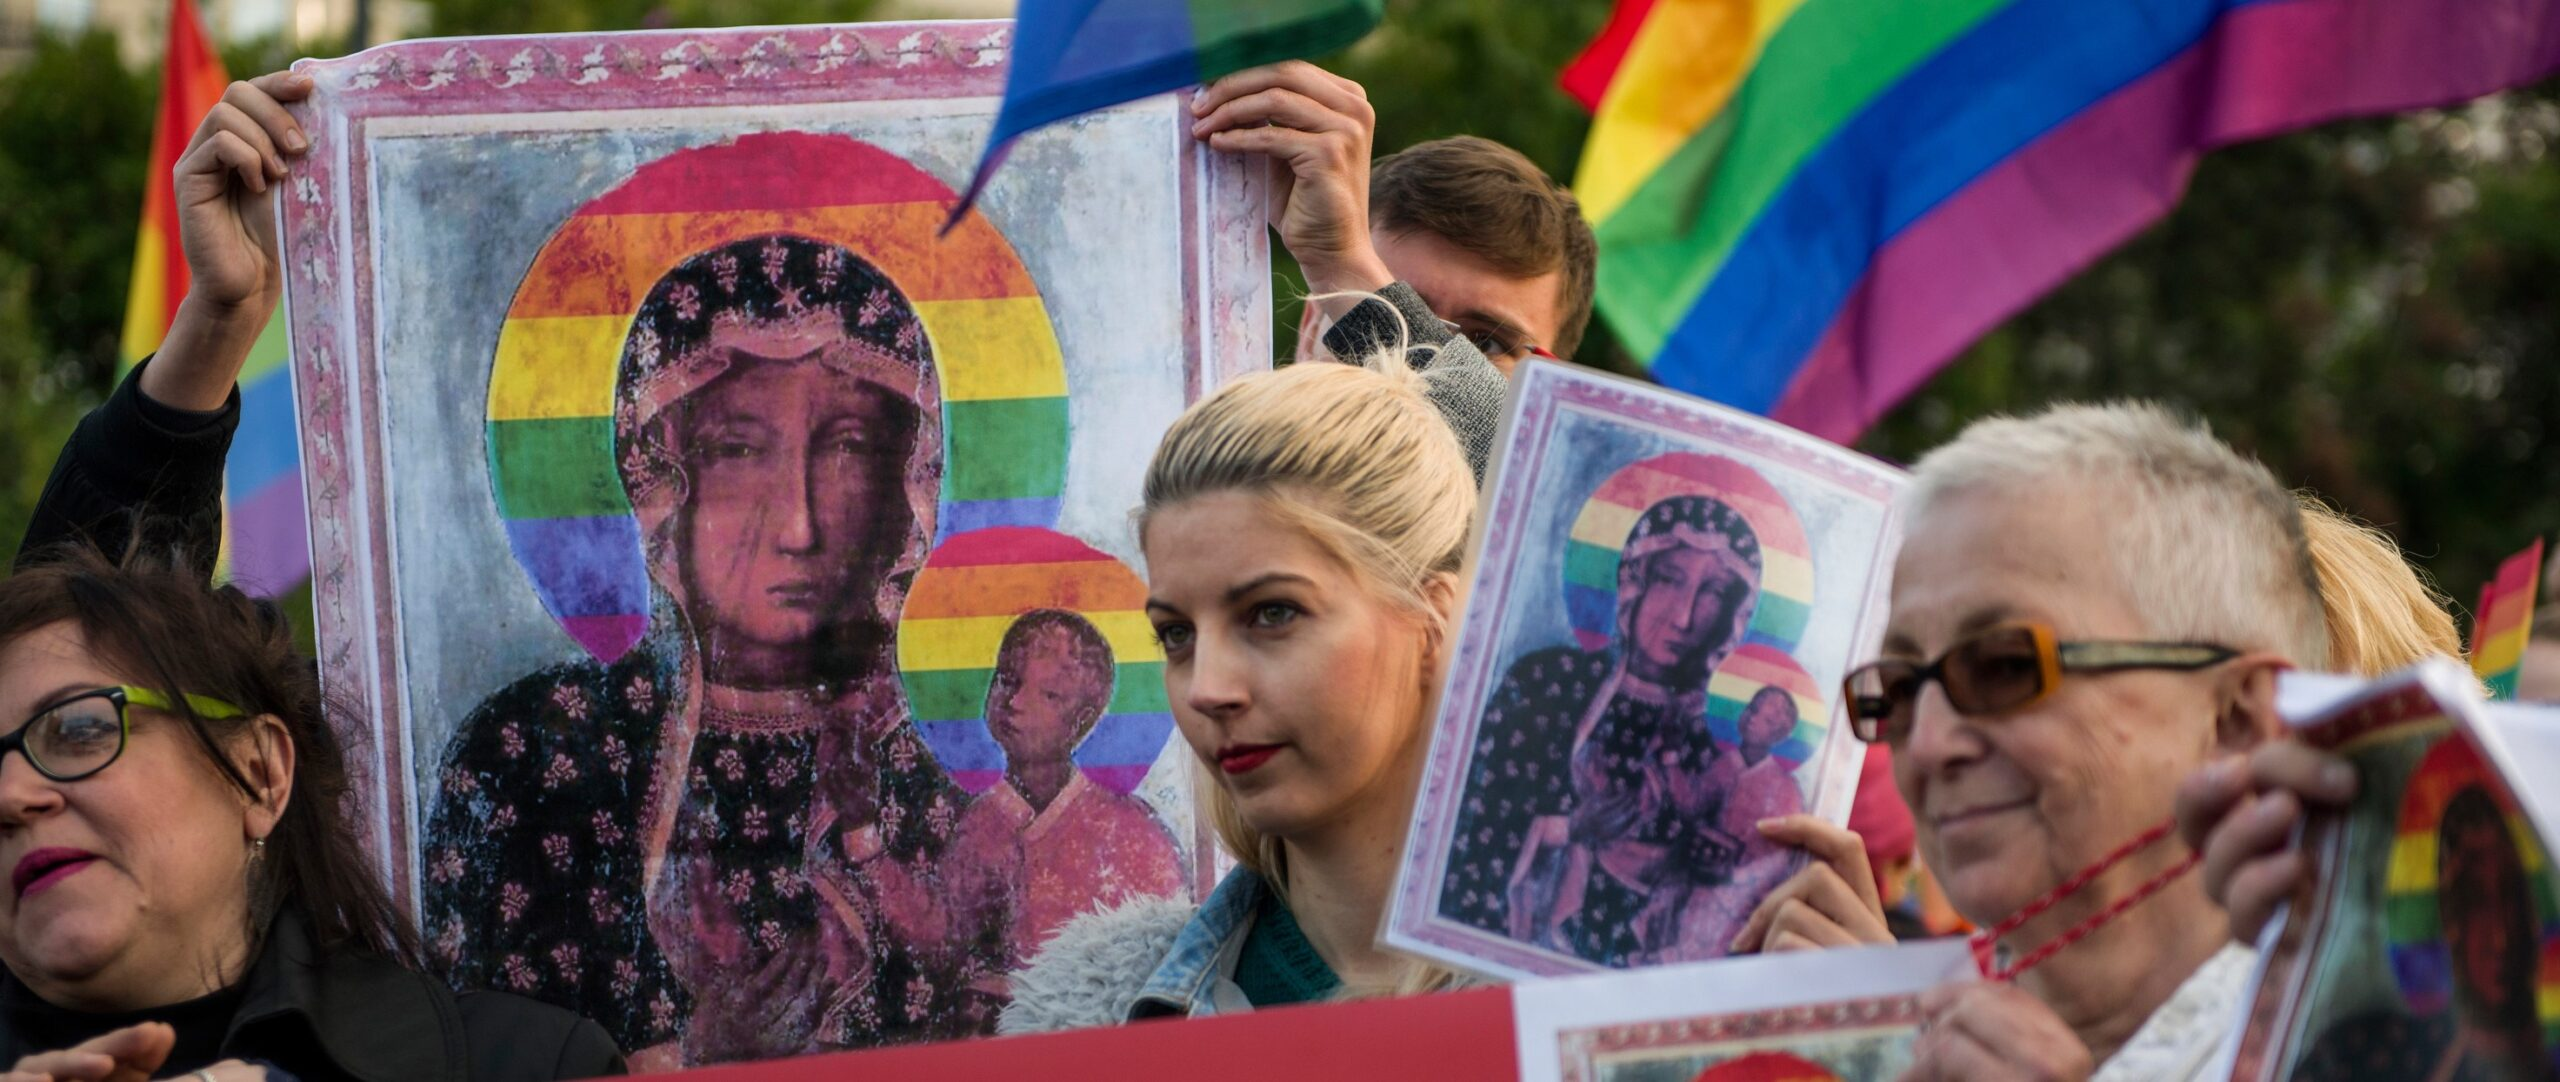 Poland: Rainbow halo women's acquittal shows tactics of intimidation against activists